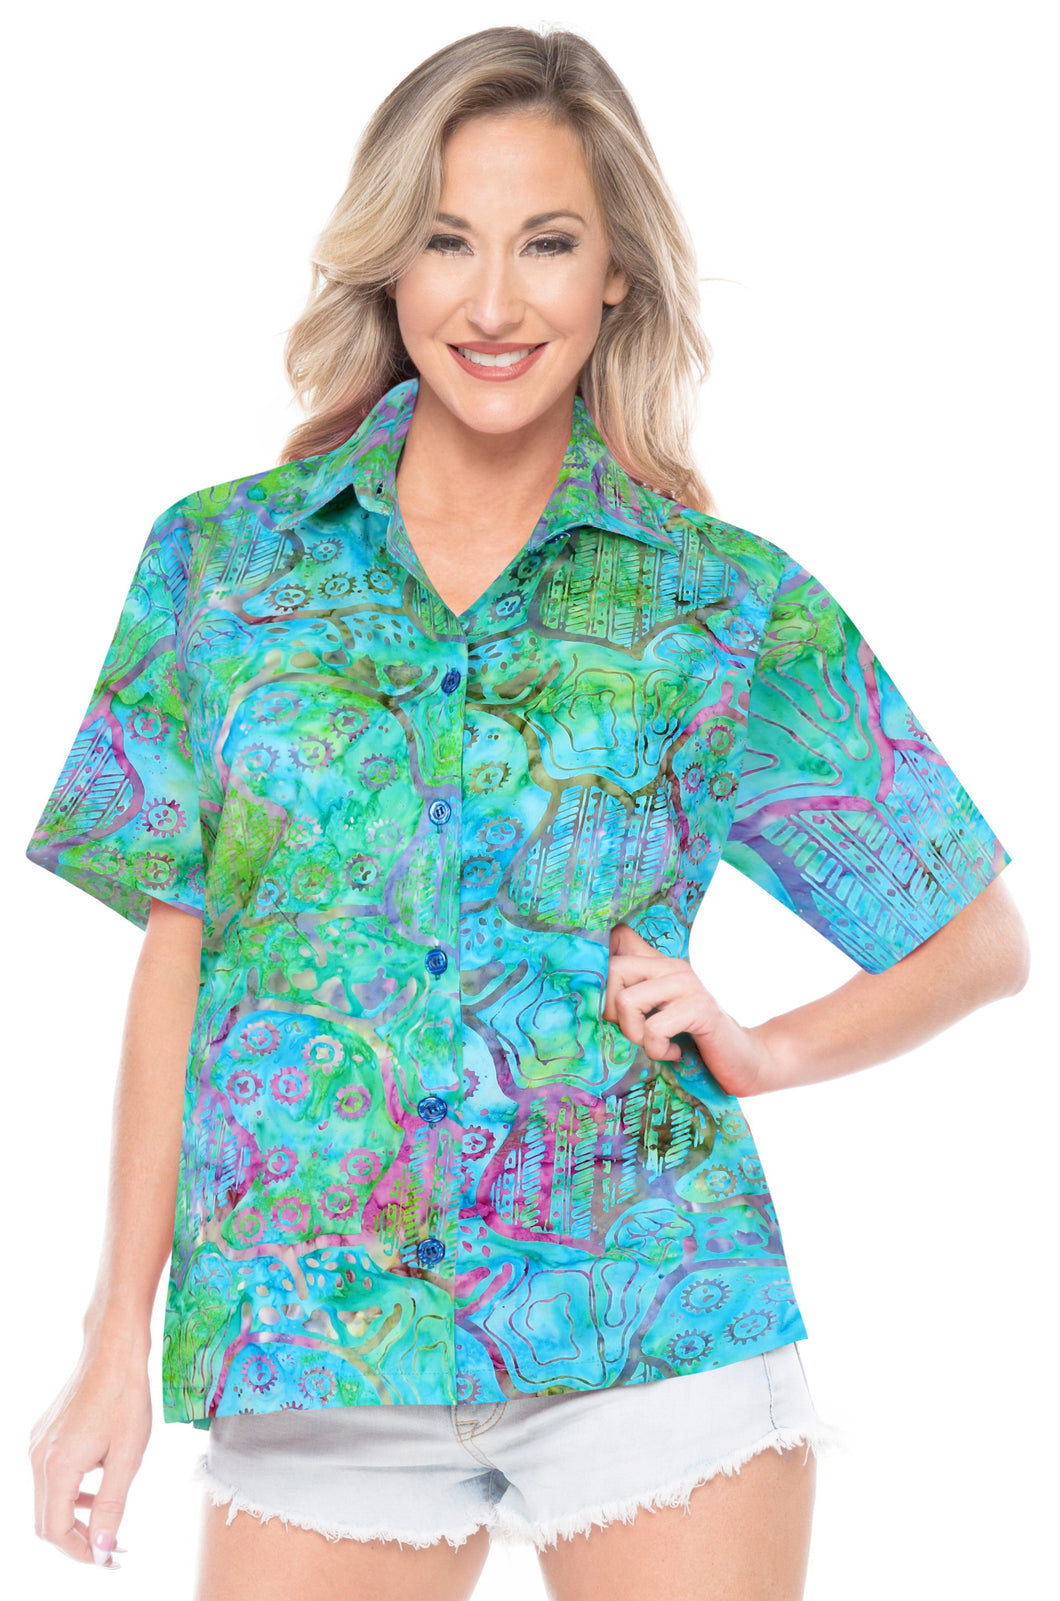 la-leela-womens-beach-wear-button-down-short-sleeve-casual-blouse-100-cotton-hand-printed-multi